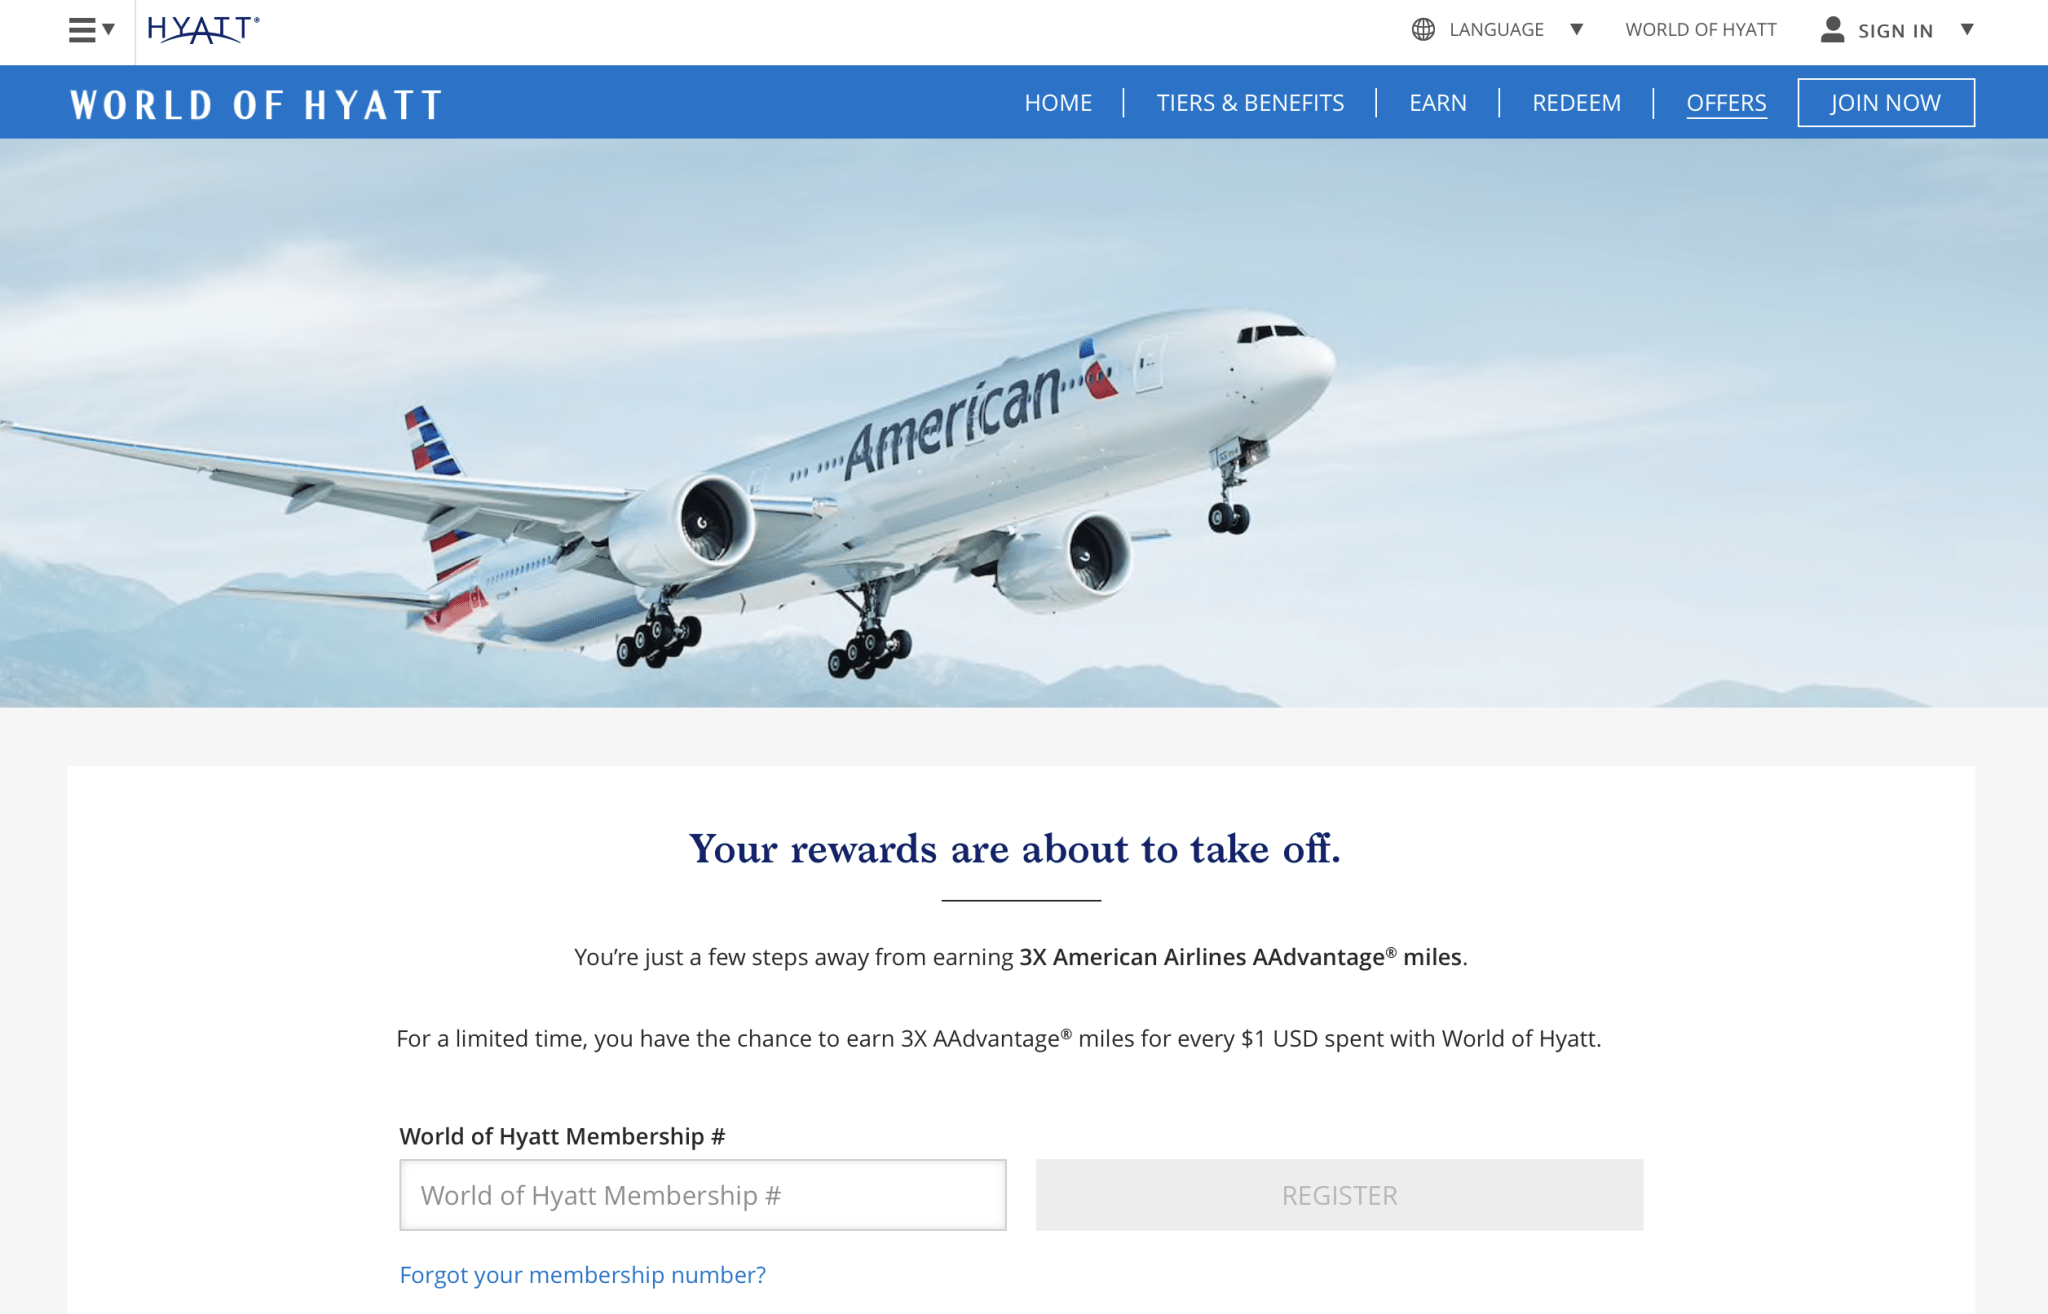 Landing page for Hyatt 3X AA miles. (Image courtesy of Hyatt)